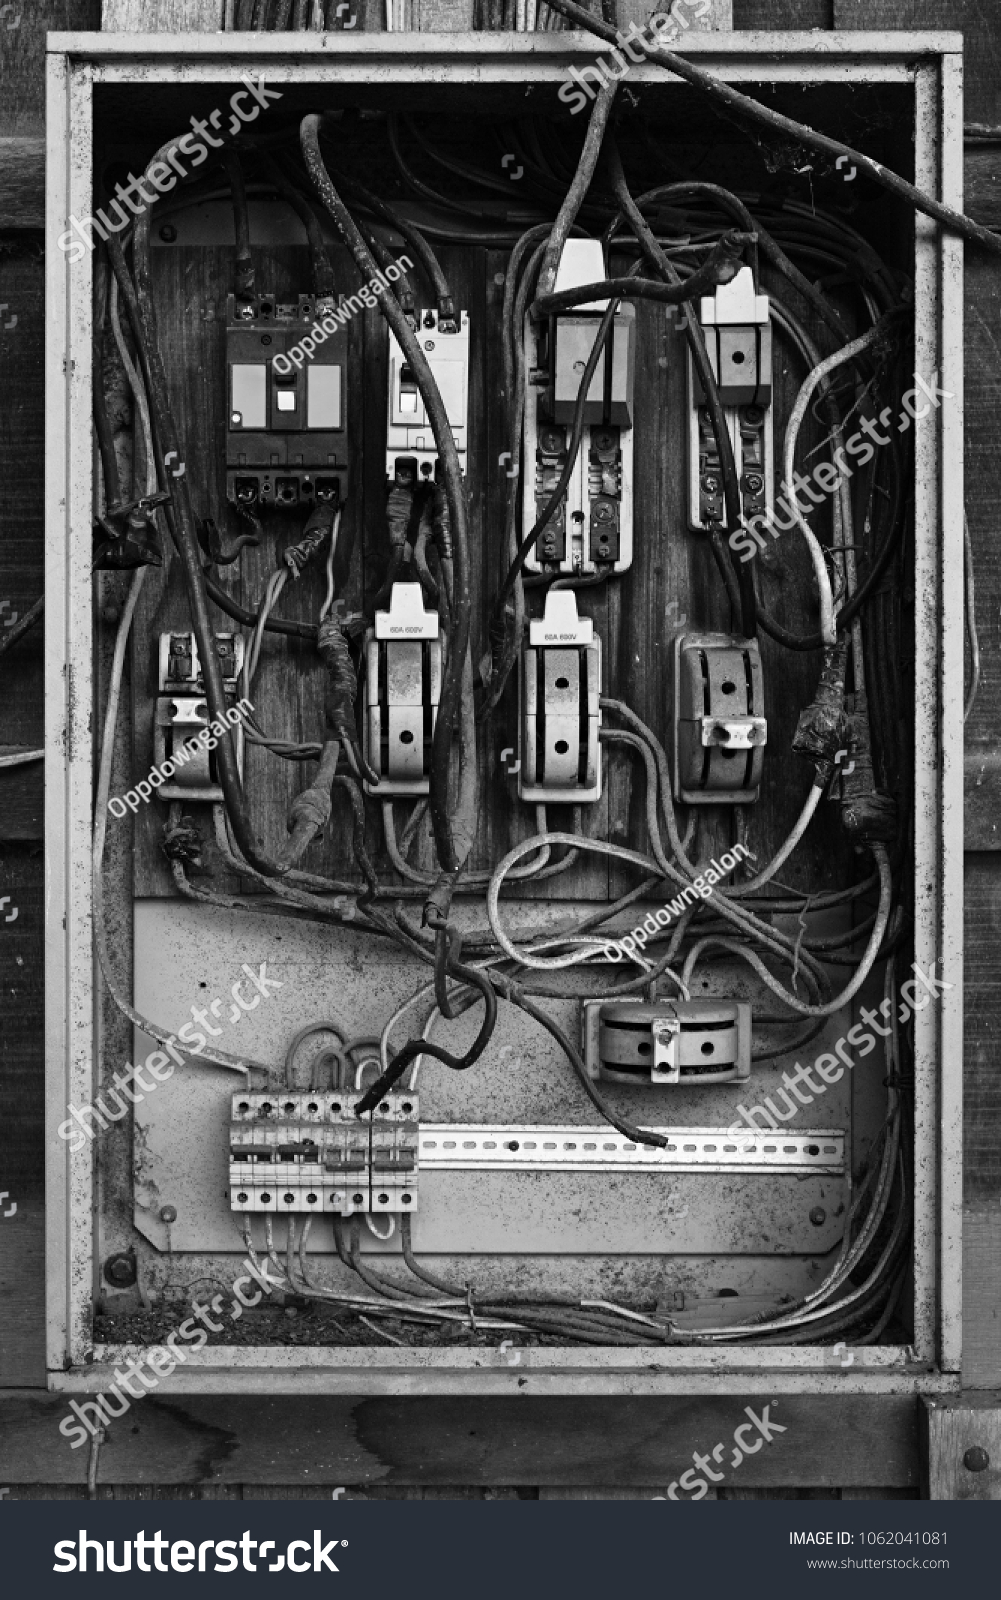 Old electric breaker box with wires and fuses in black and white